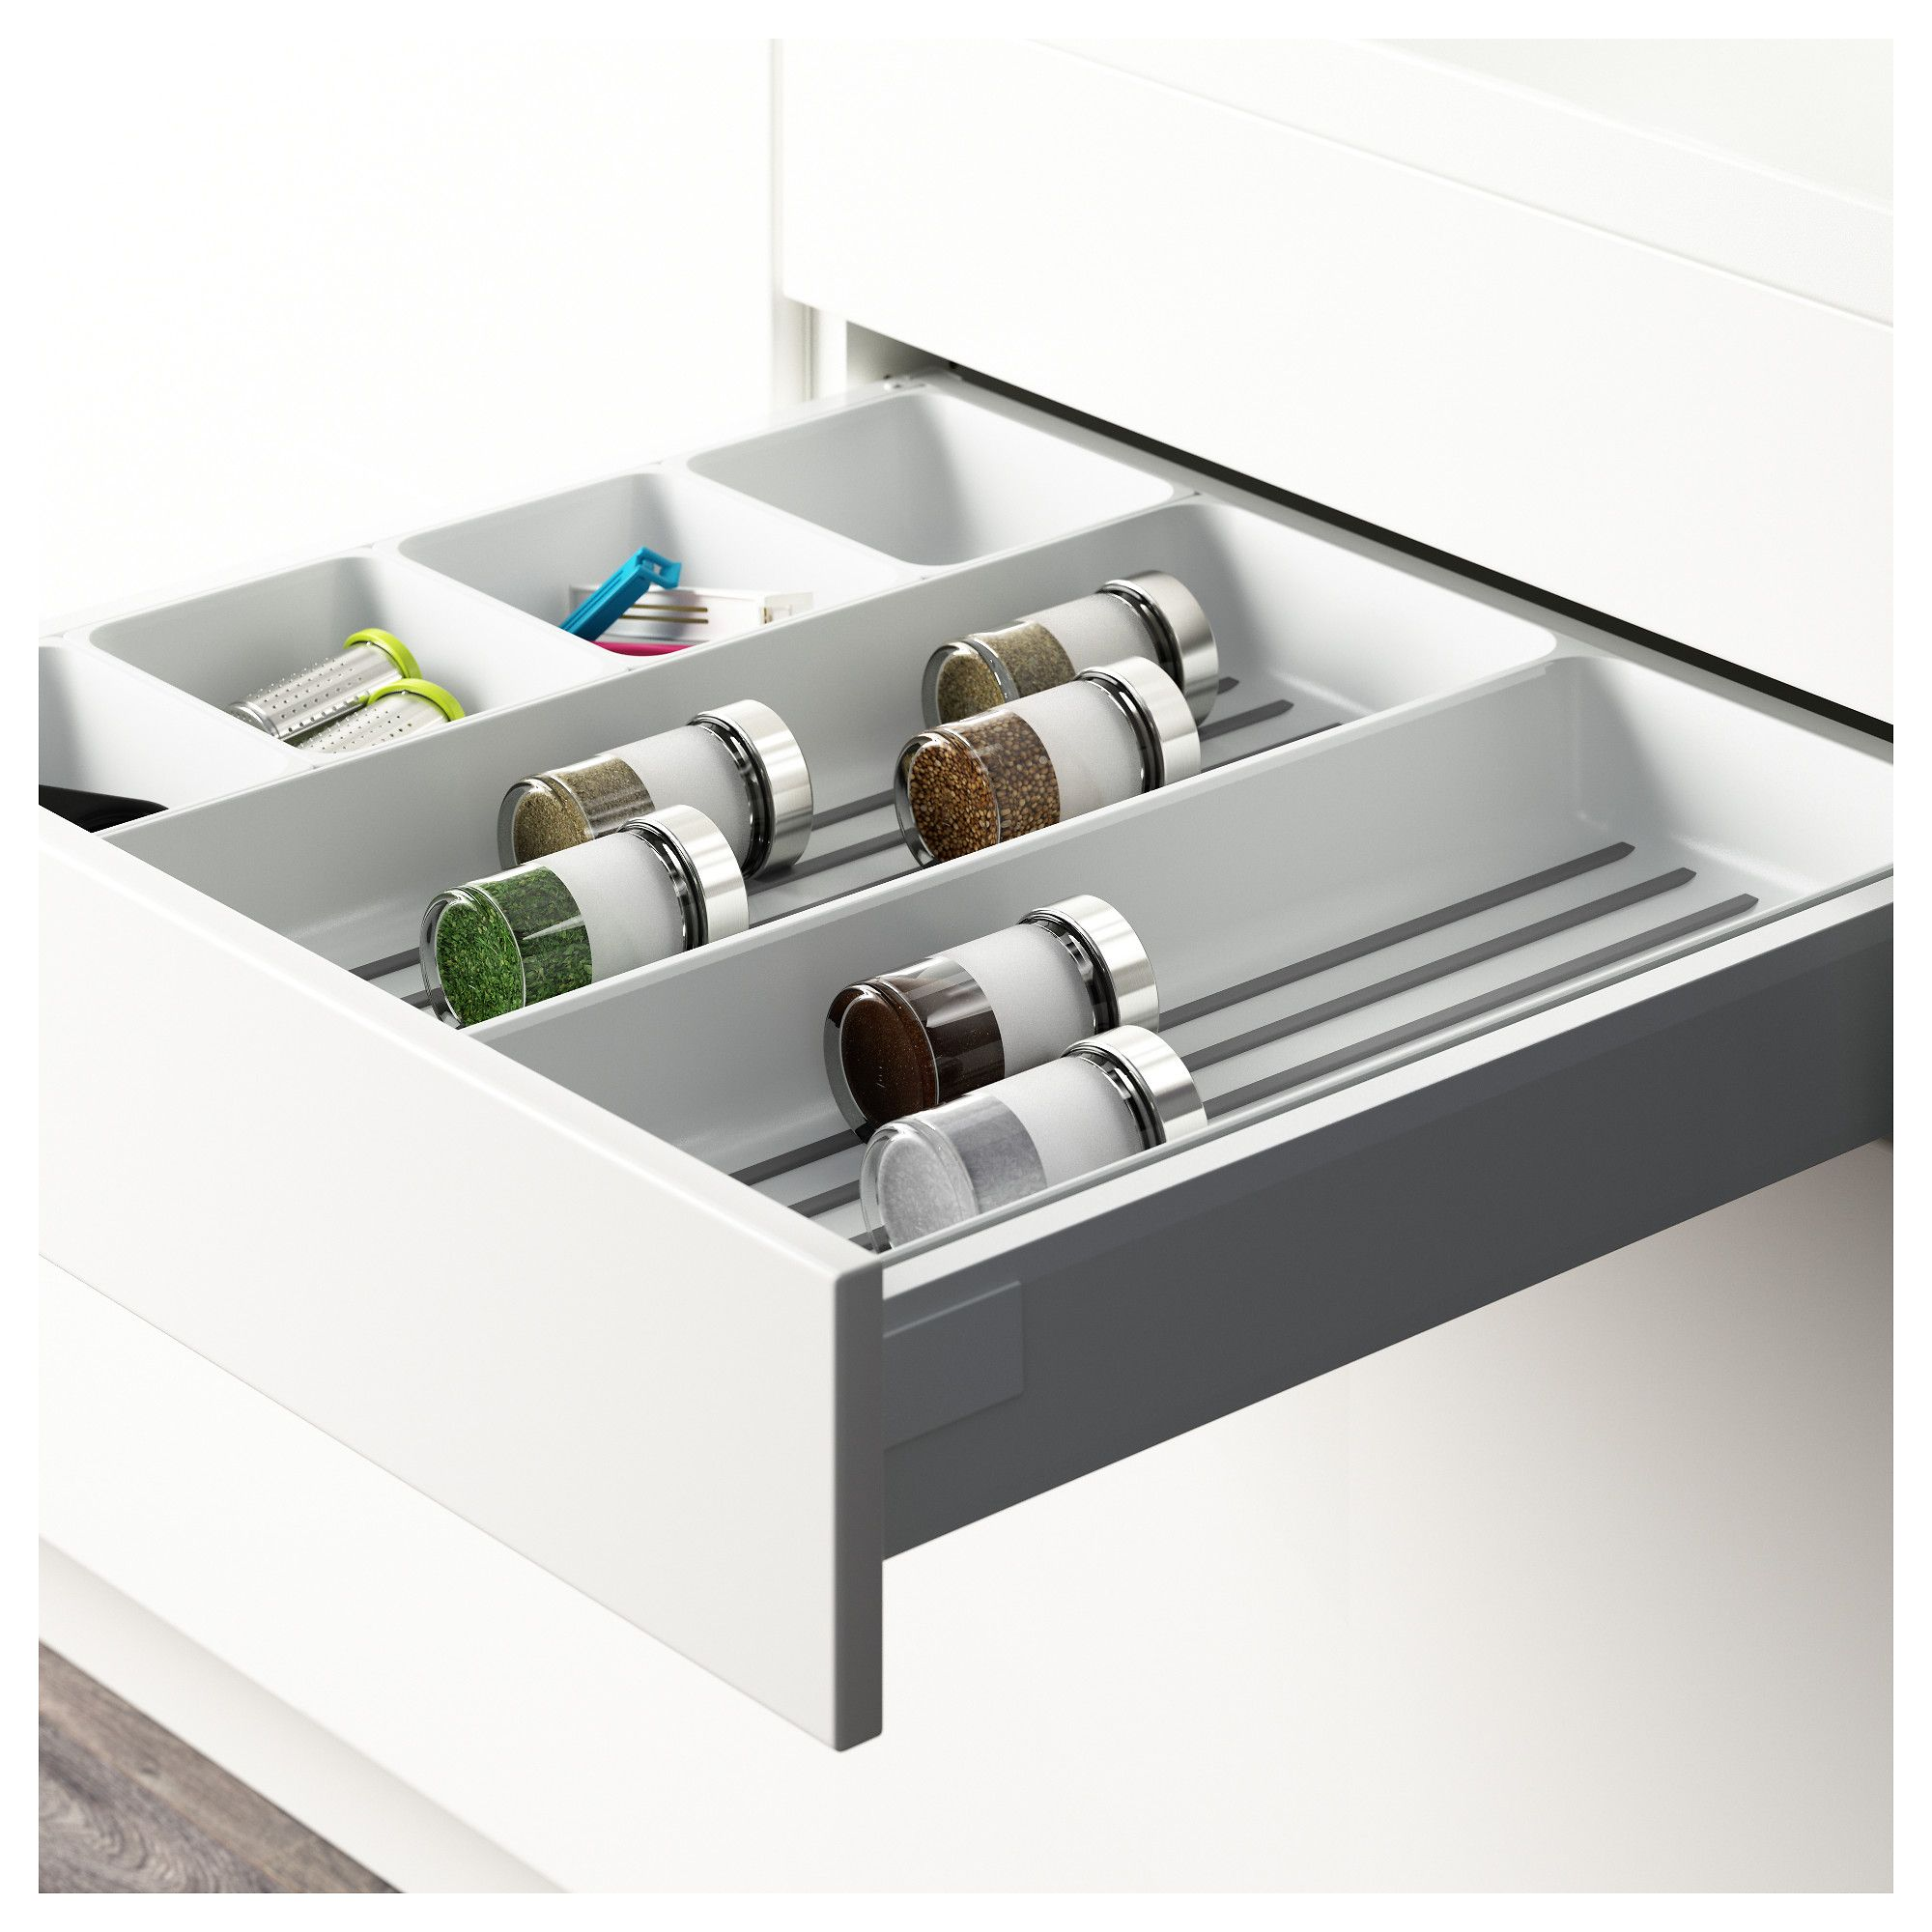 Kitchen Cabinet Accessories Canada: Furniture And Home Furnishings In 2019